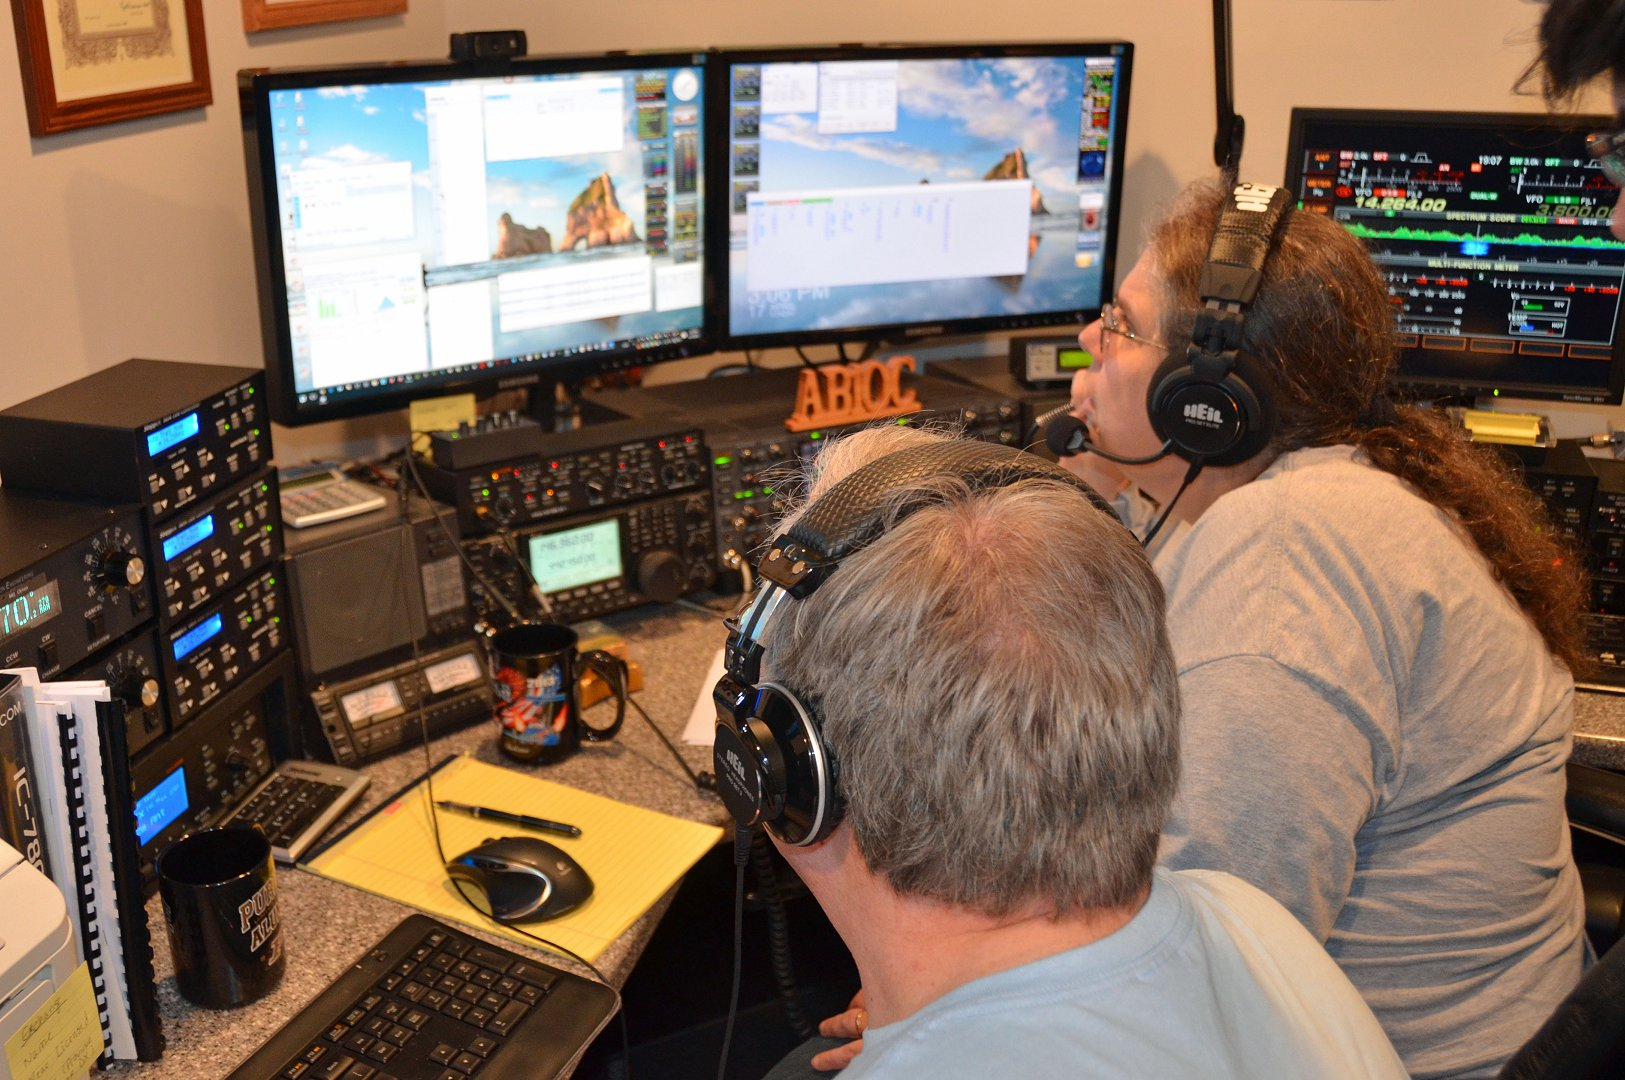 SSB - Aron and Merle Operating